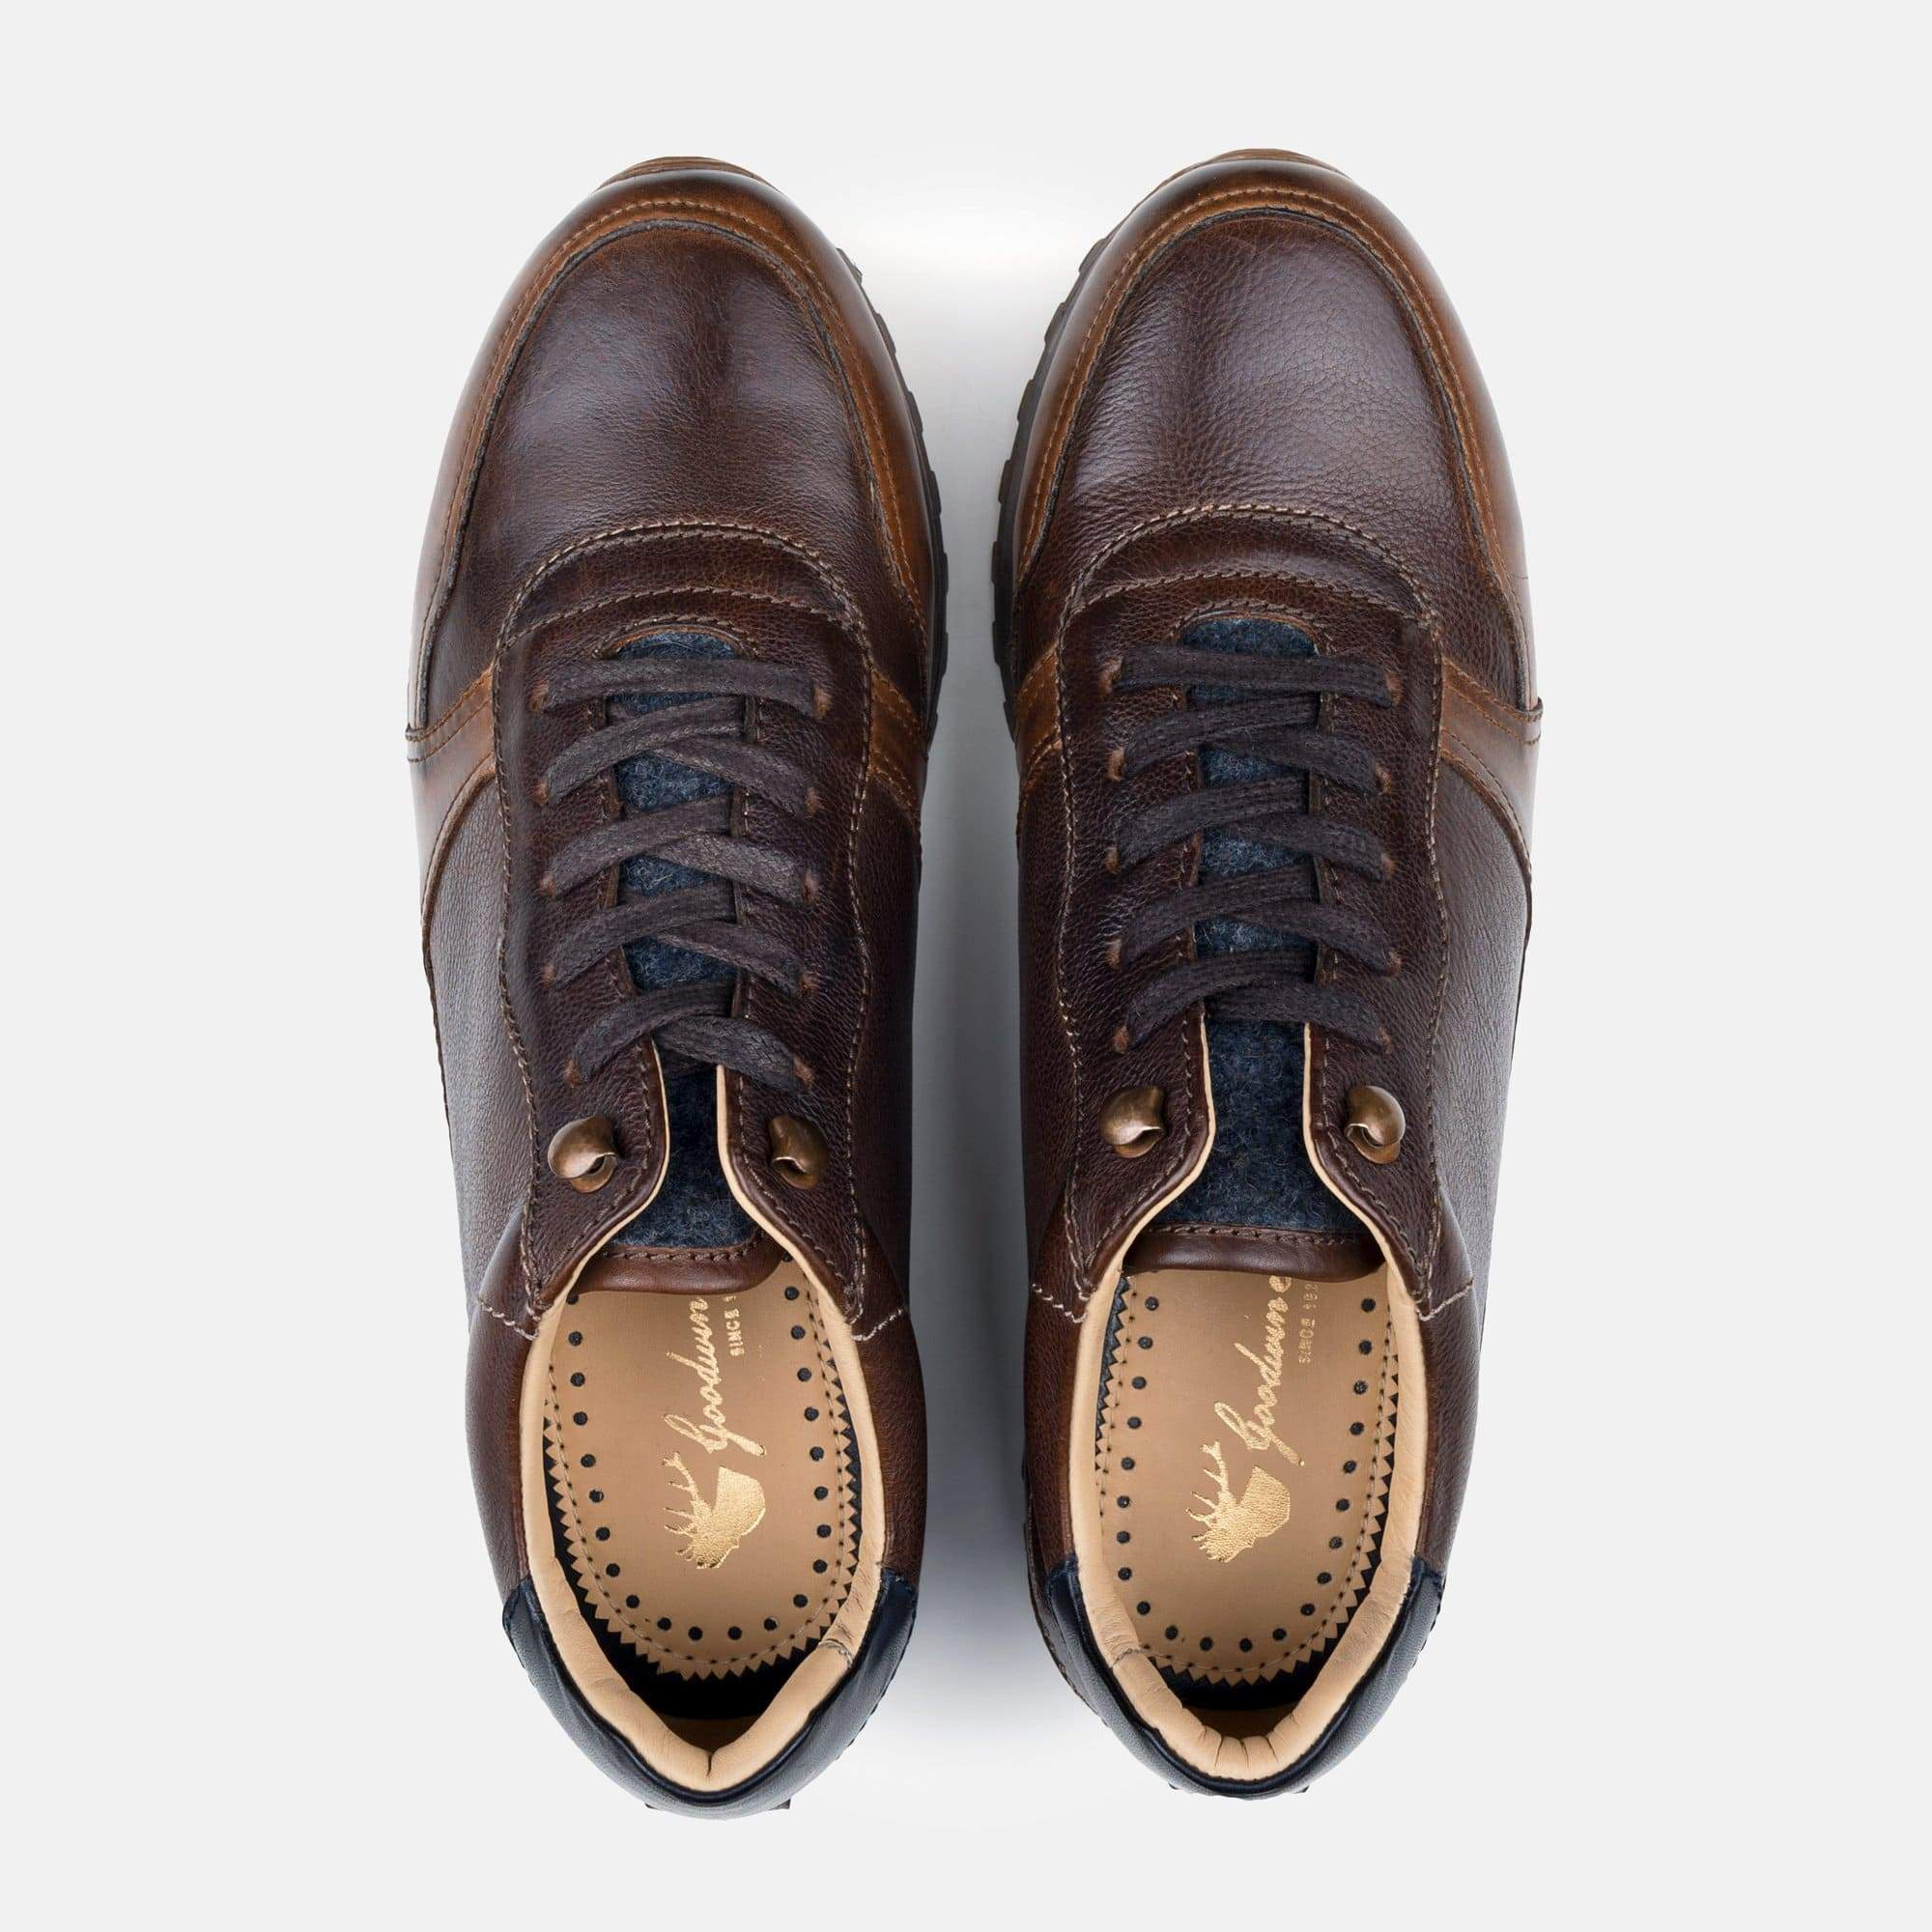 Goodwin Smith Footwear AW19 MEN'S BLAKE BROWN TRAINER